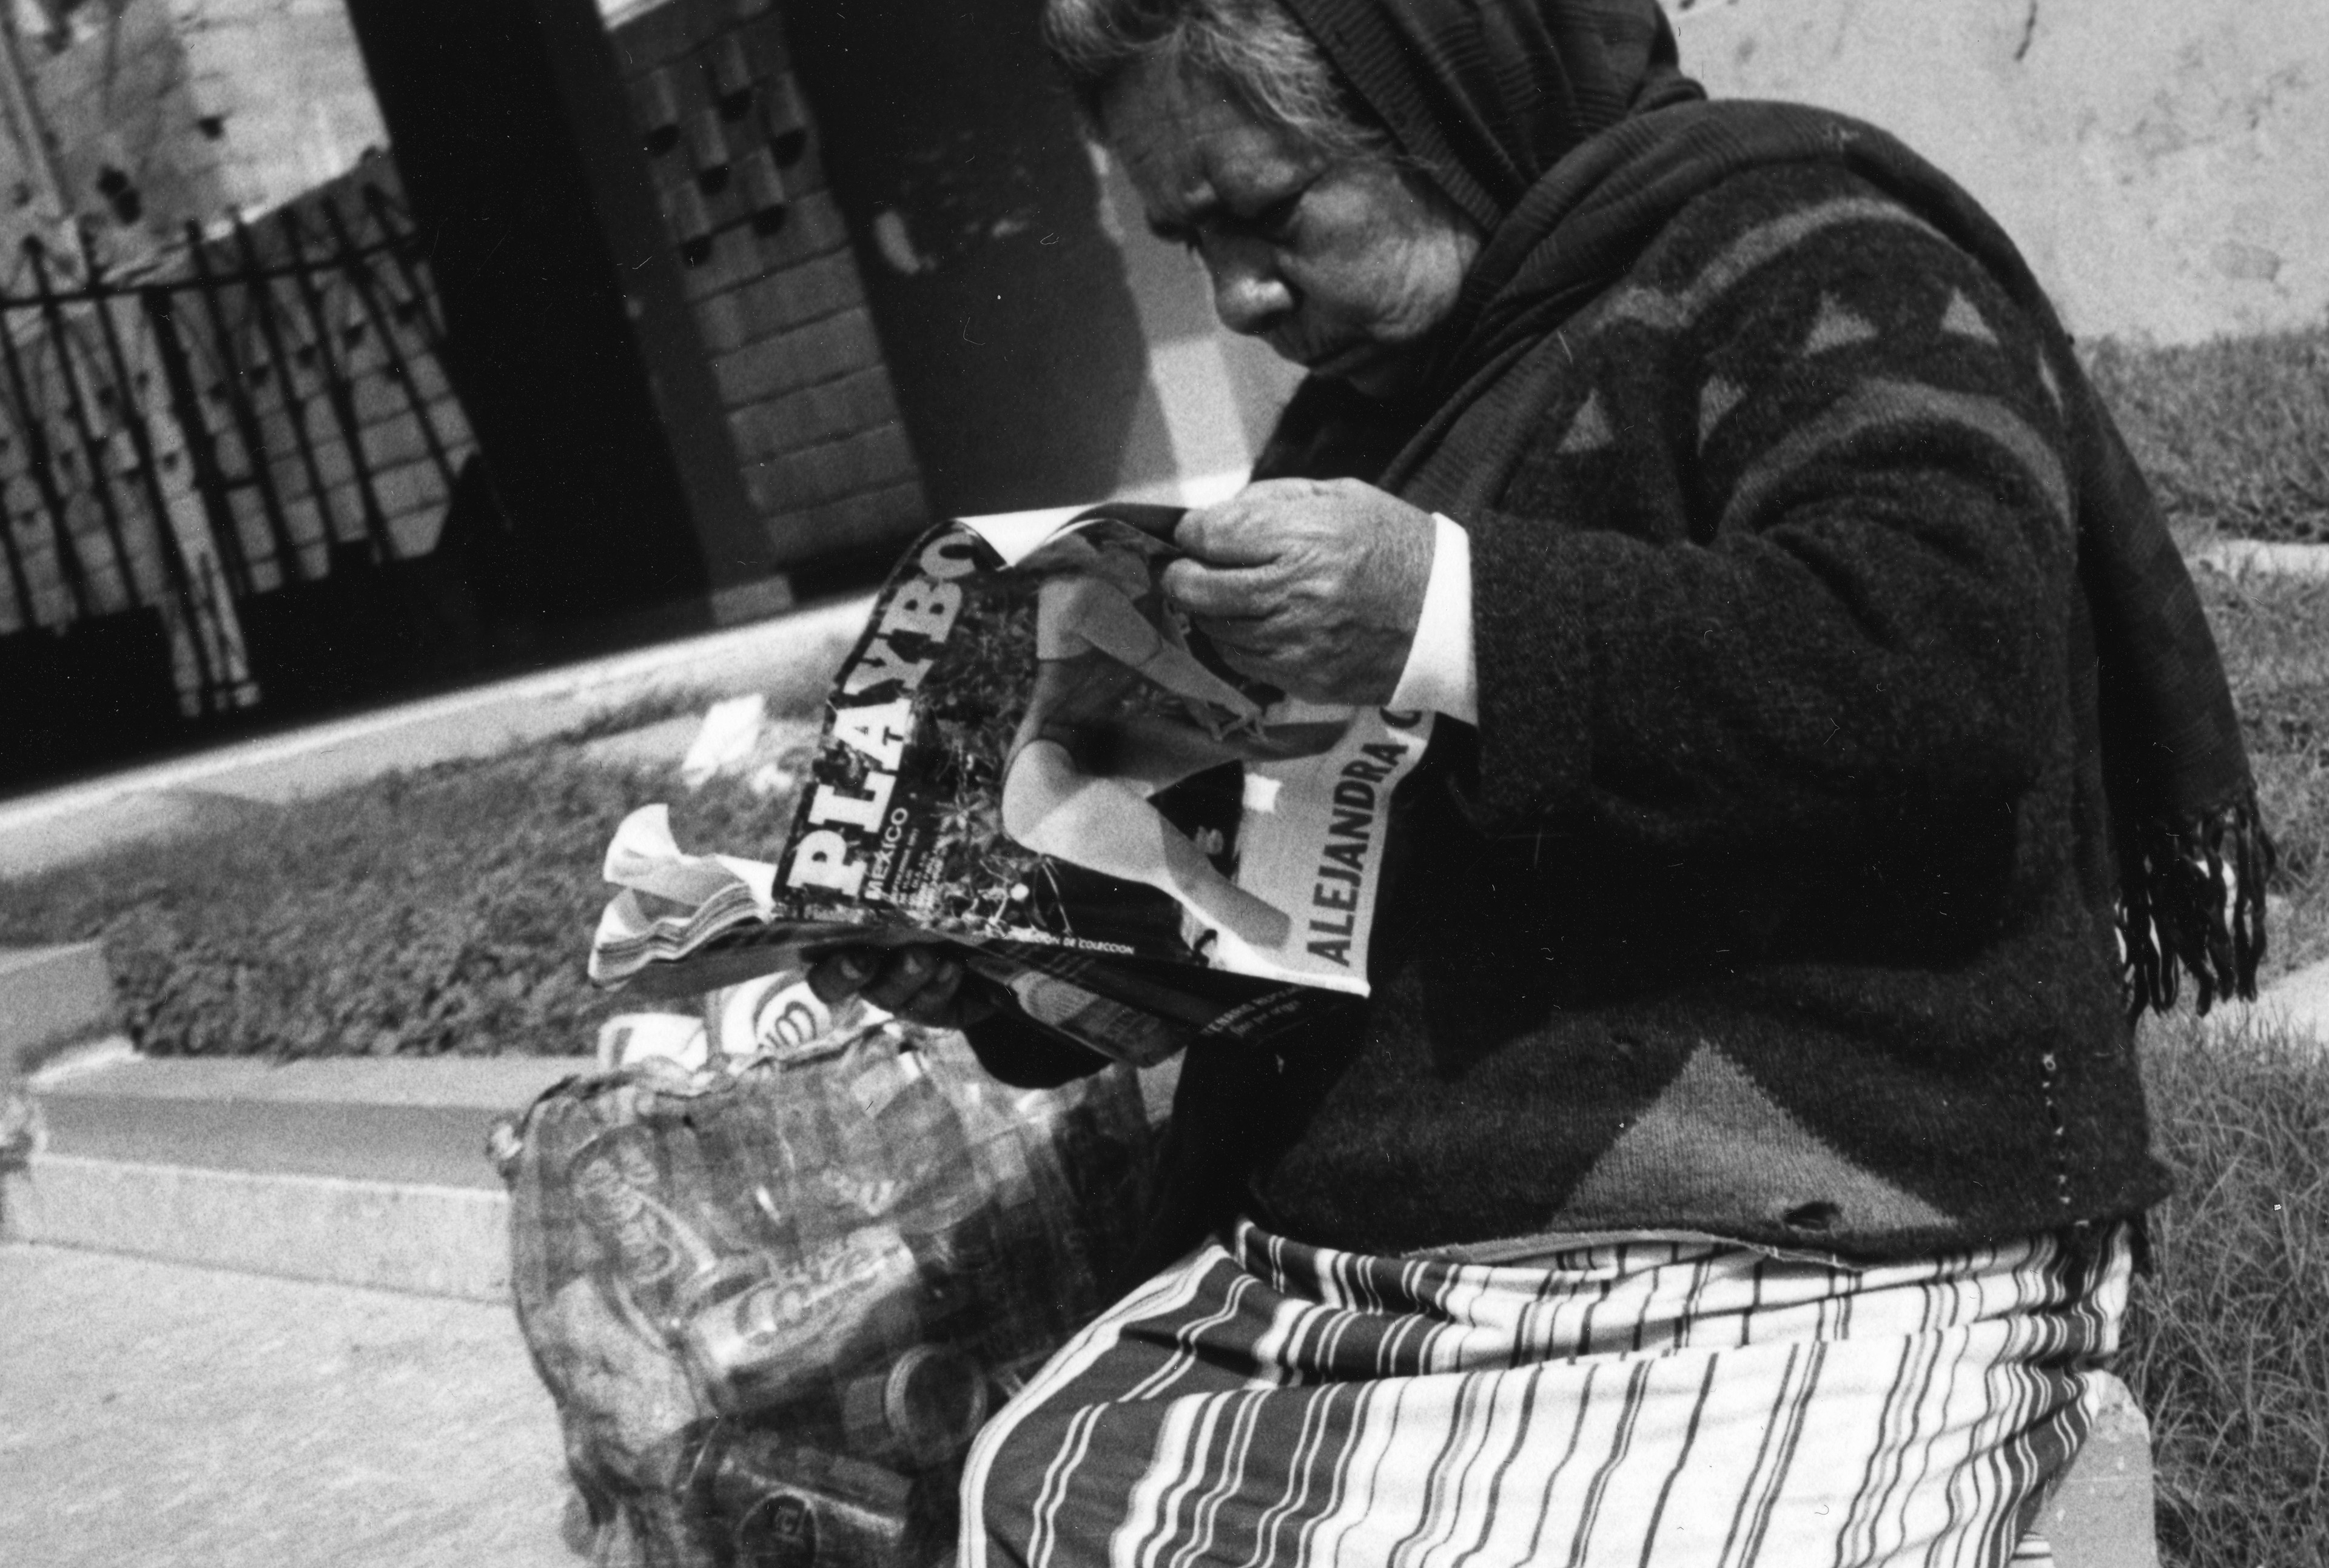 An old woman sitting with a bag full of soda cans reads a Playboy magazine